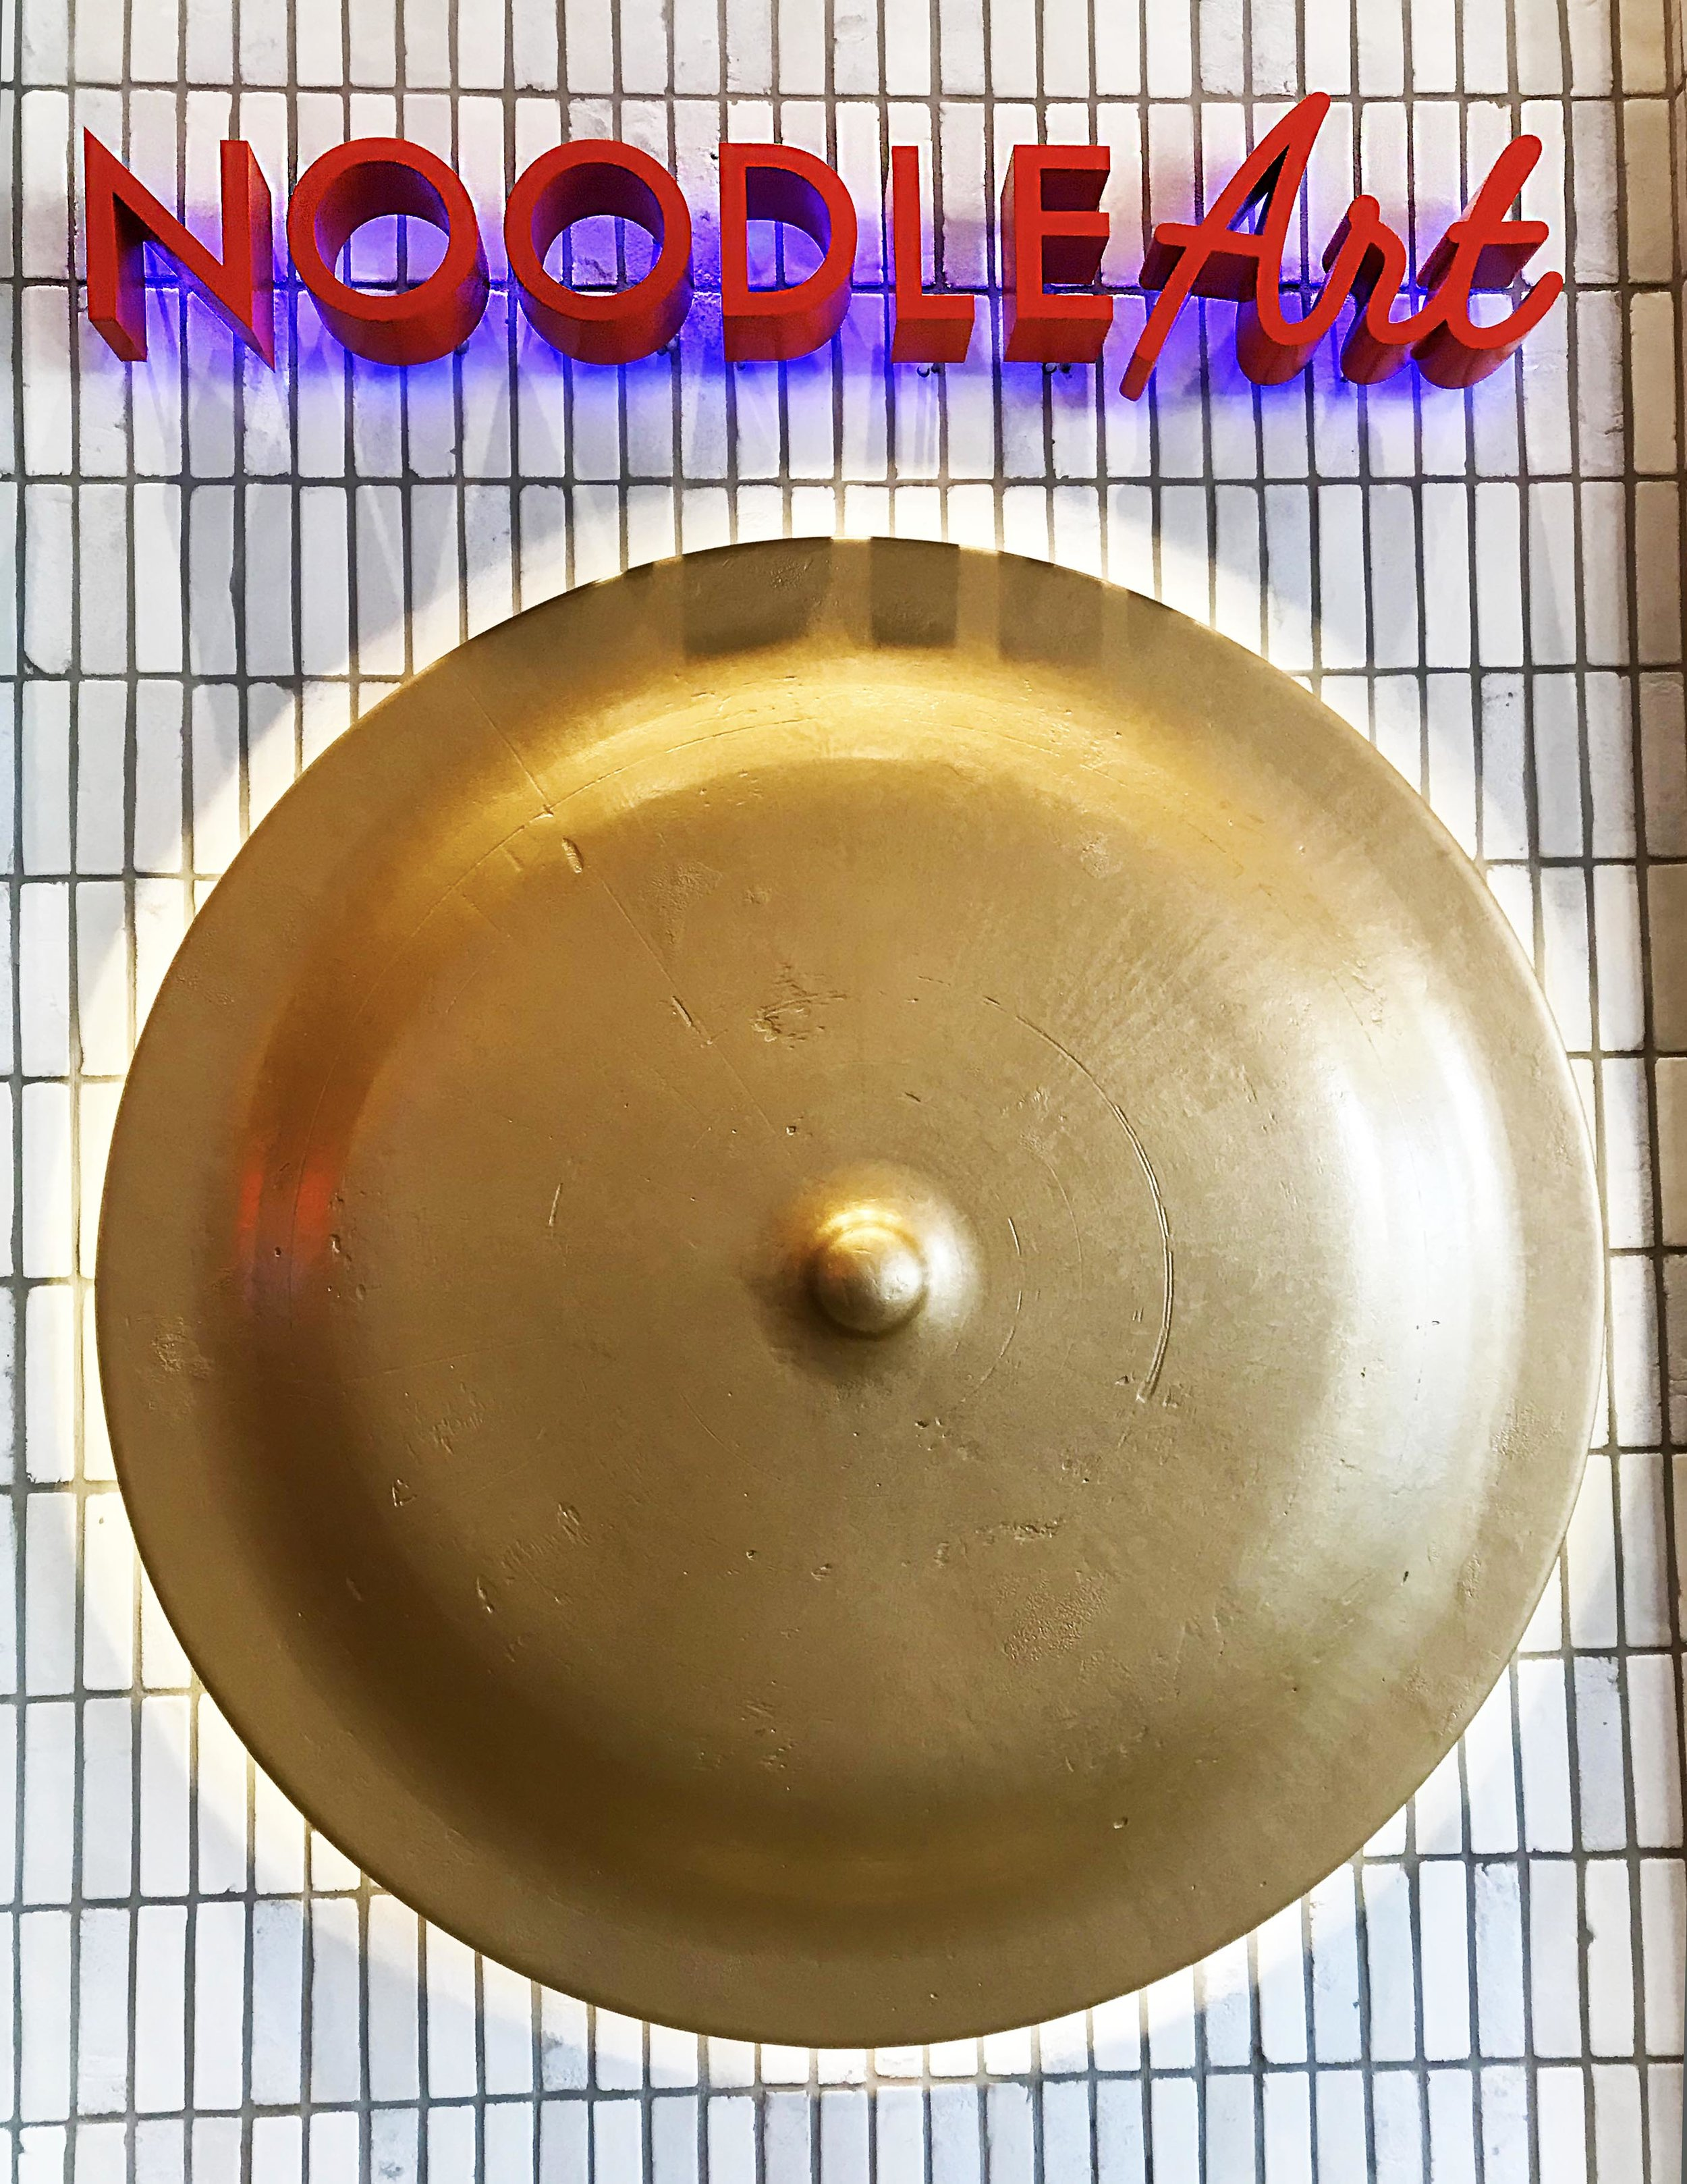 noodle art casino signs.jpg